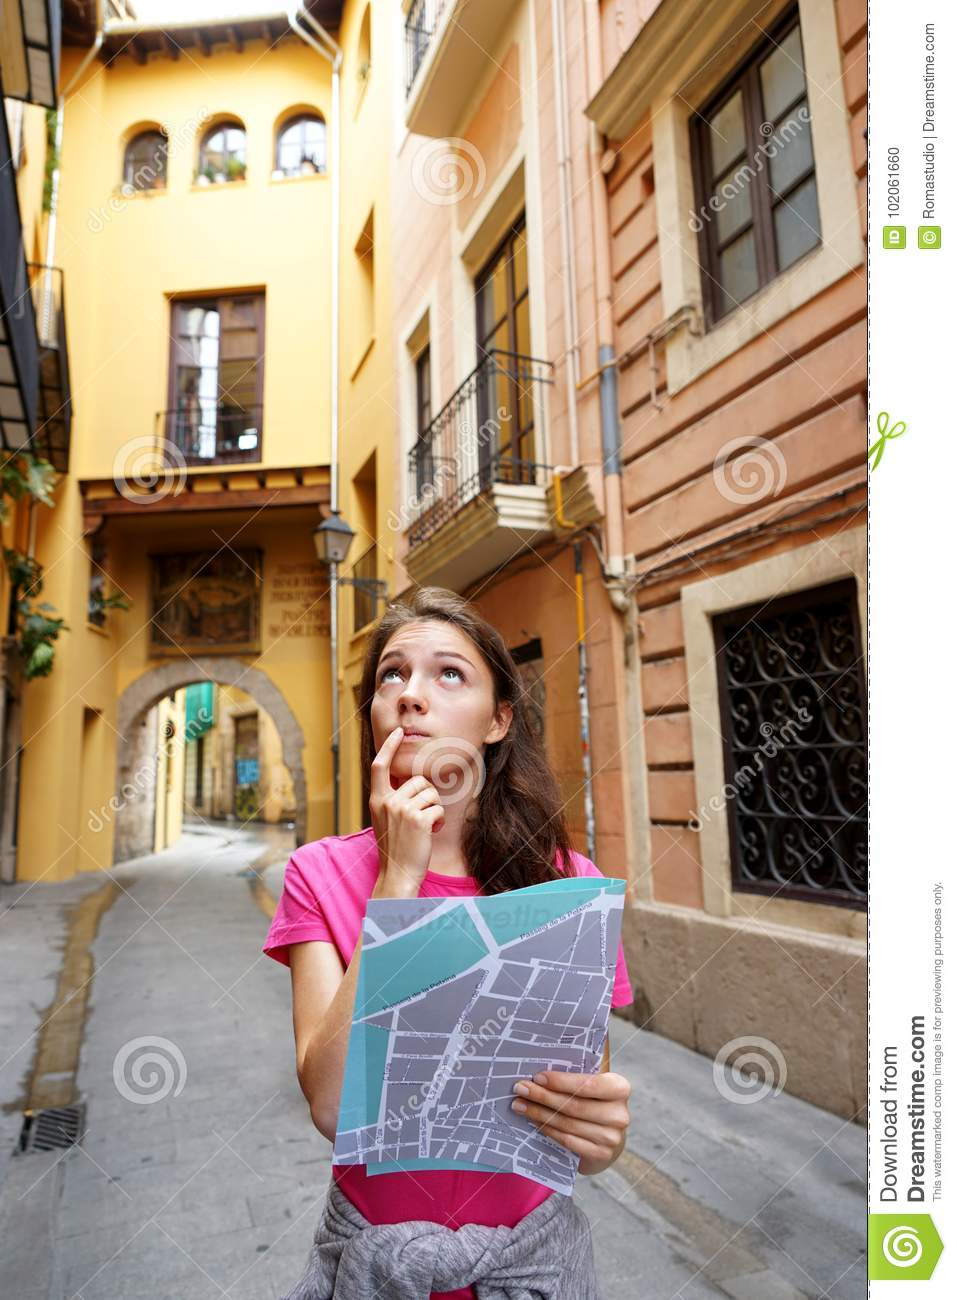 Young girl tourist with map searching for directions on the street.